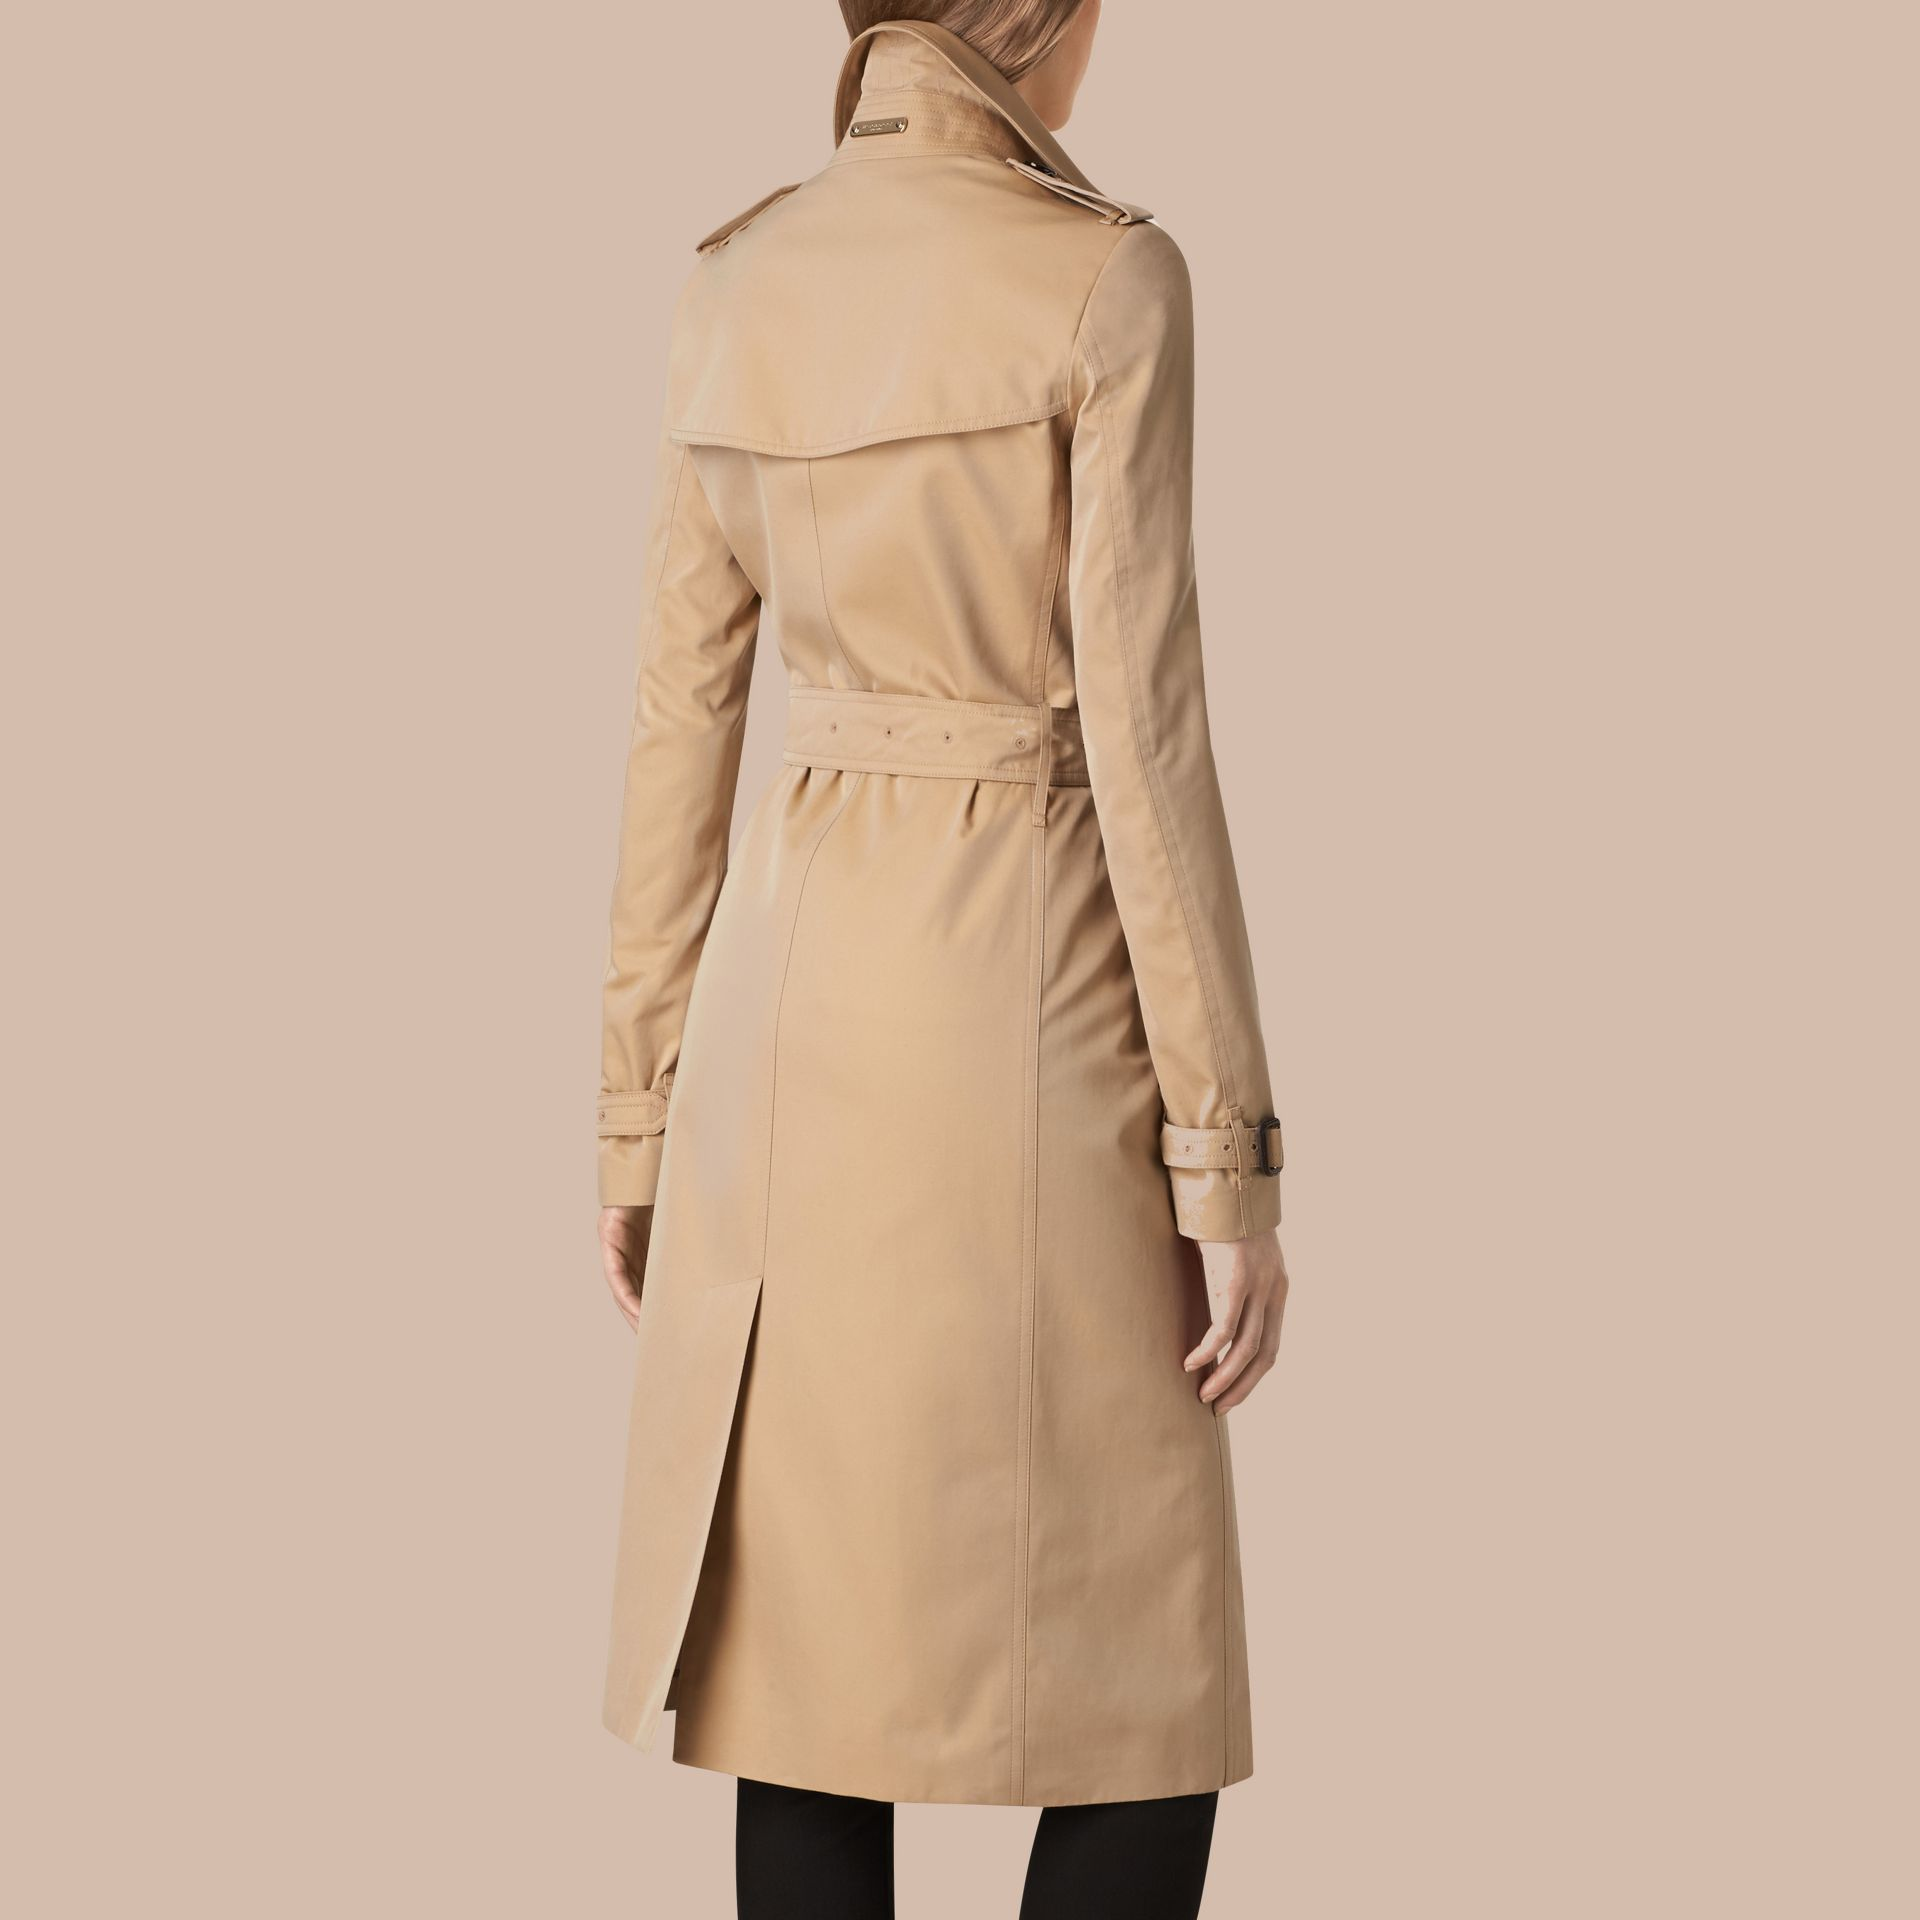 Cotton Gabardine Trench Coat - Women | Burberry Hong Kong - gallery image 3